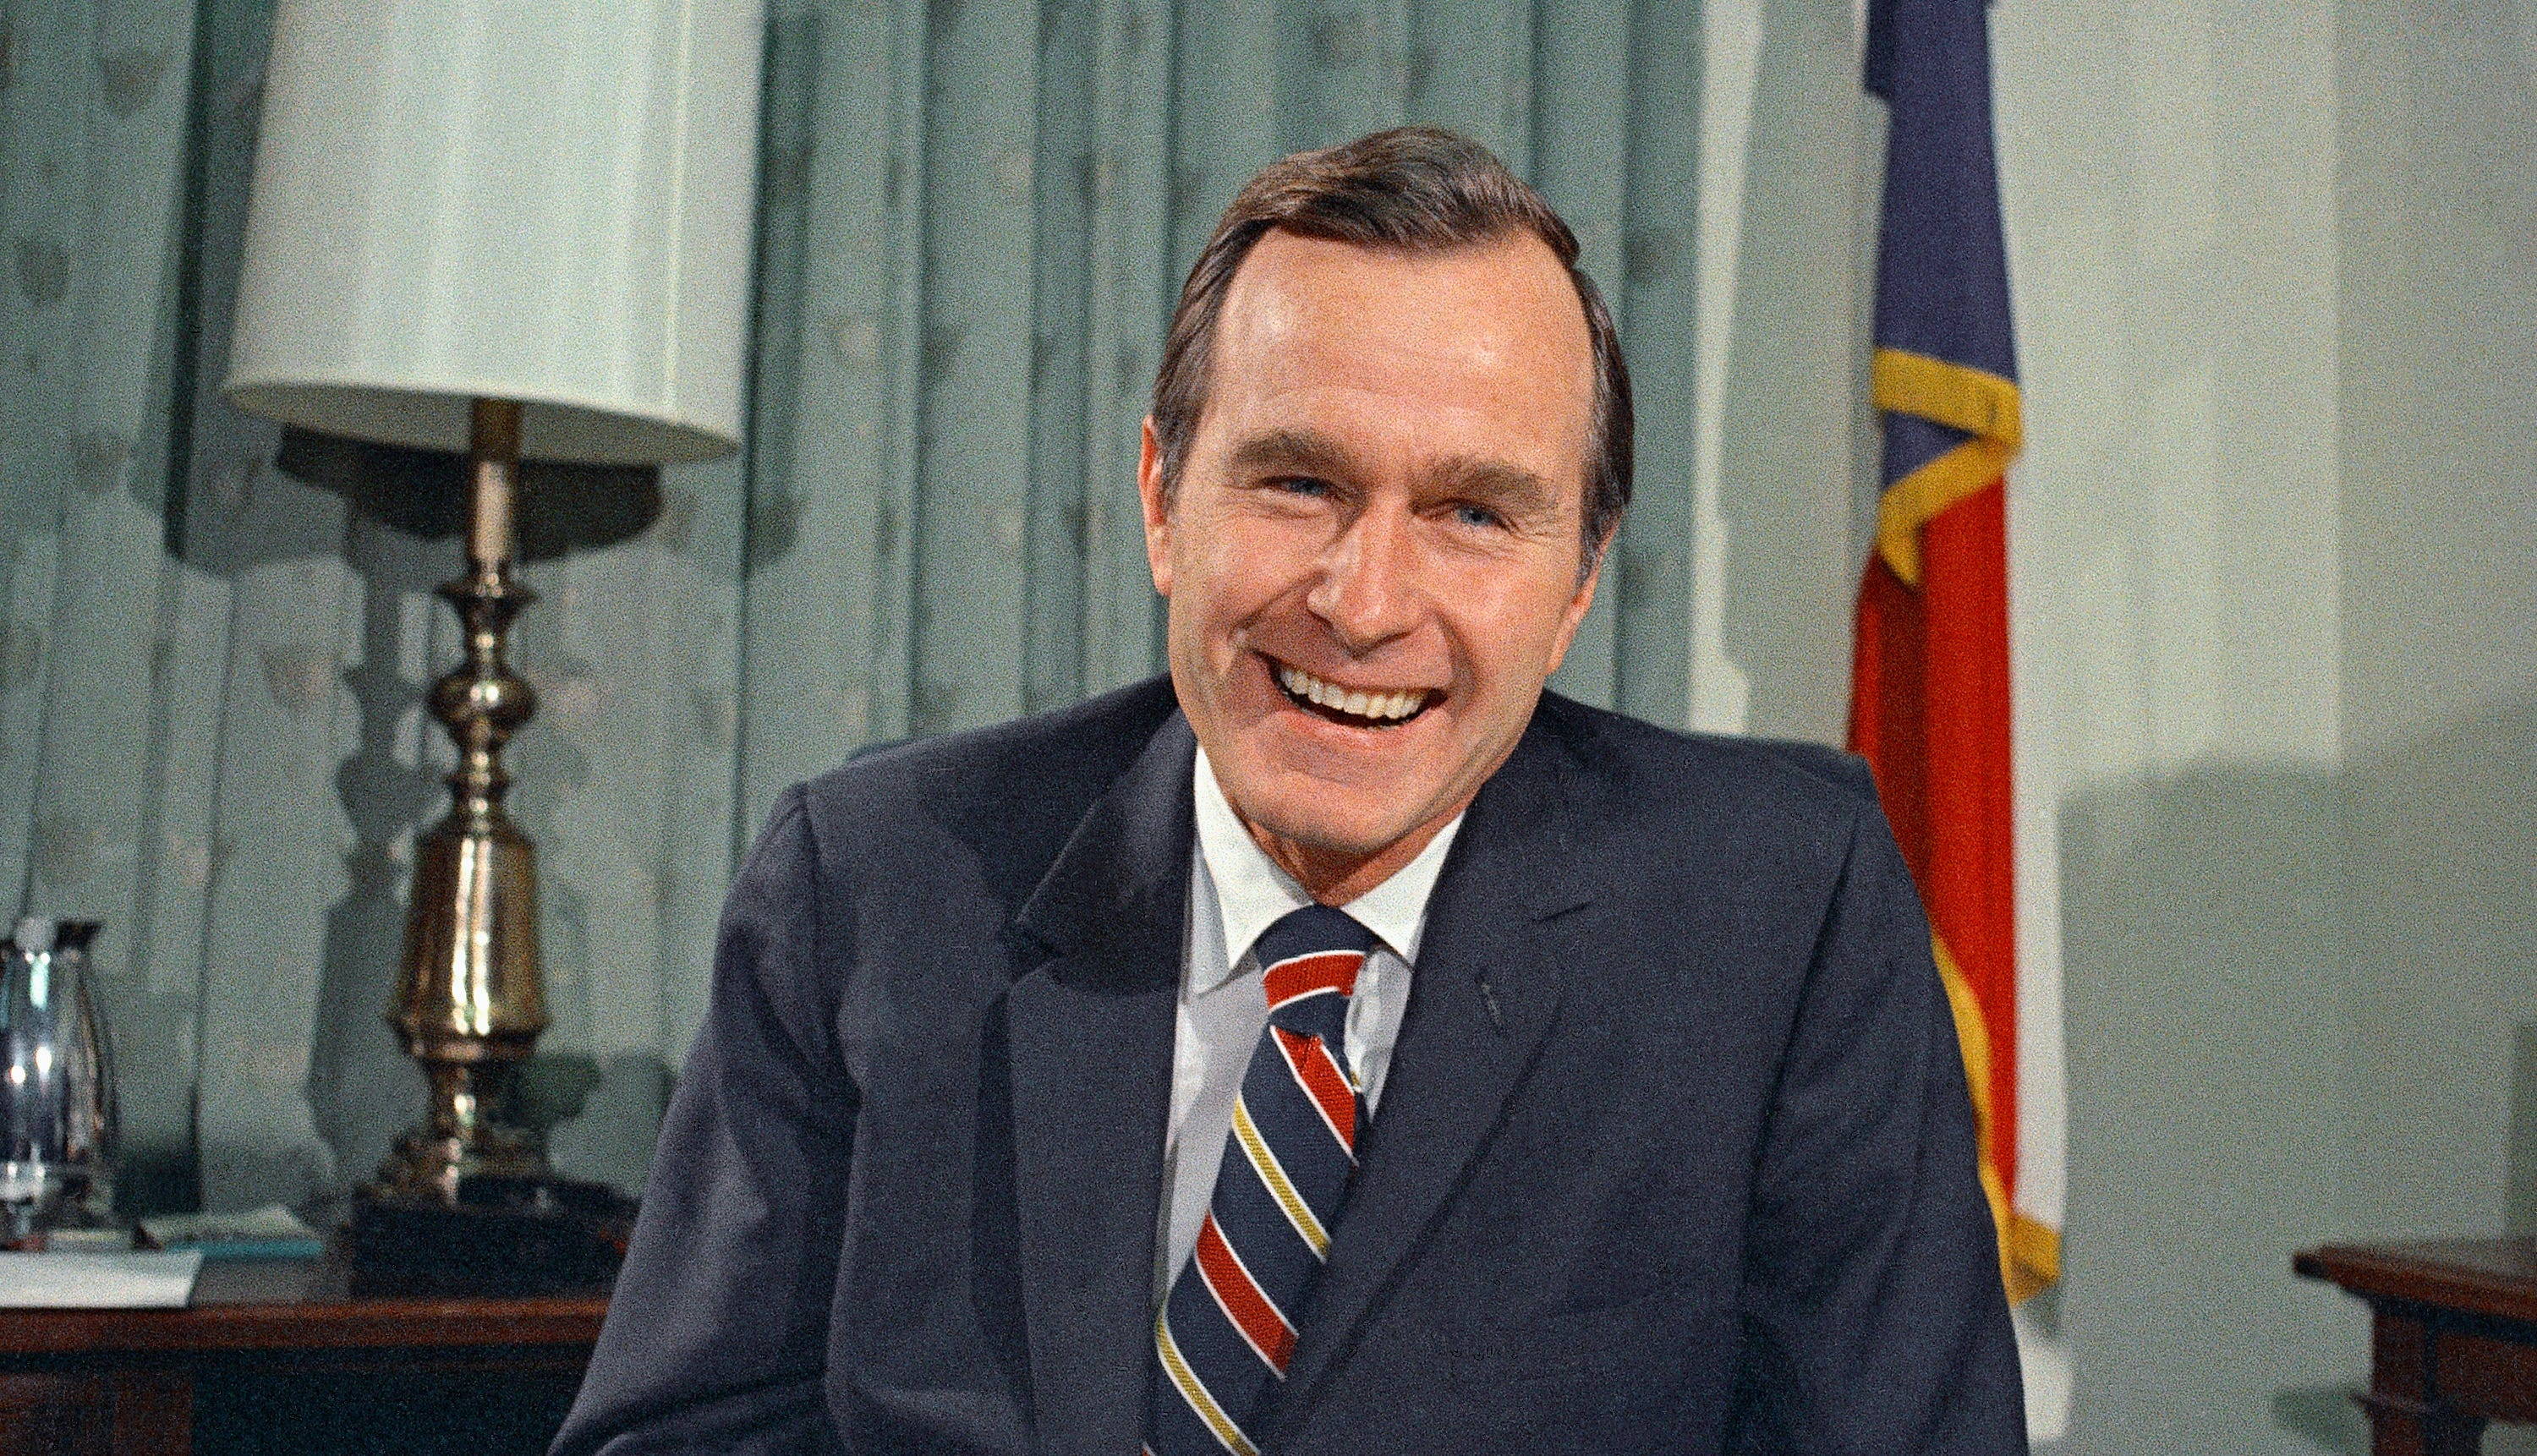 George H W Bush 41st President Of United States Dead At 94